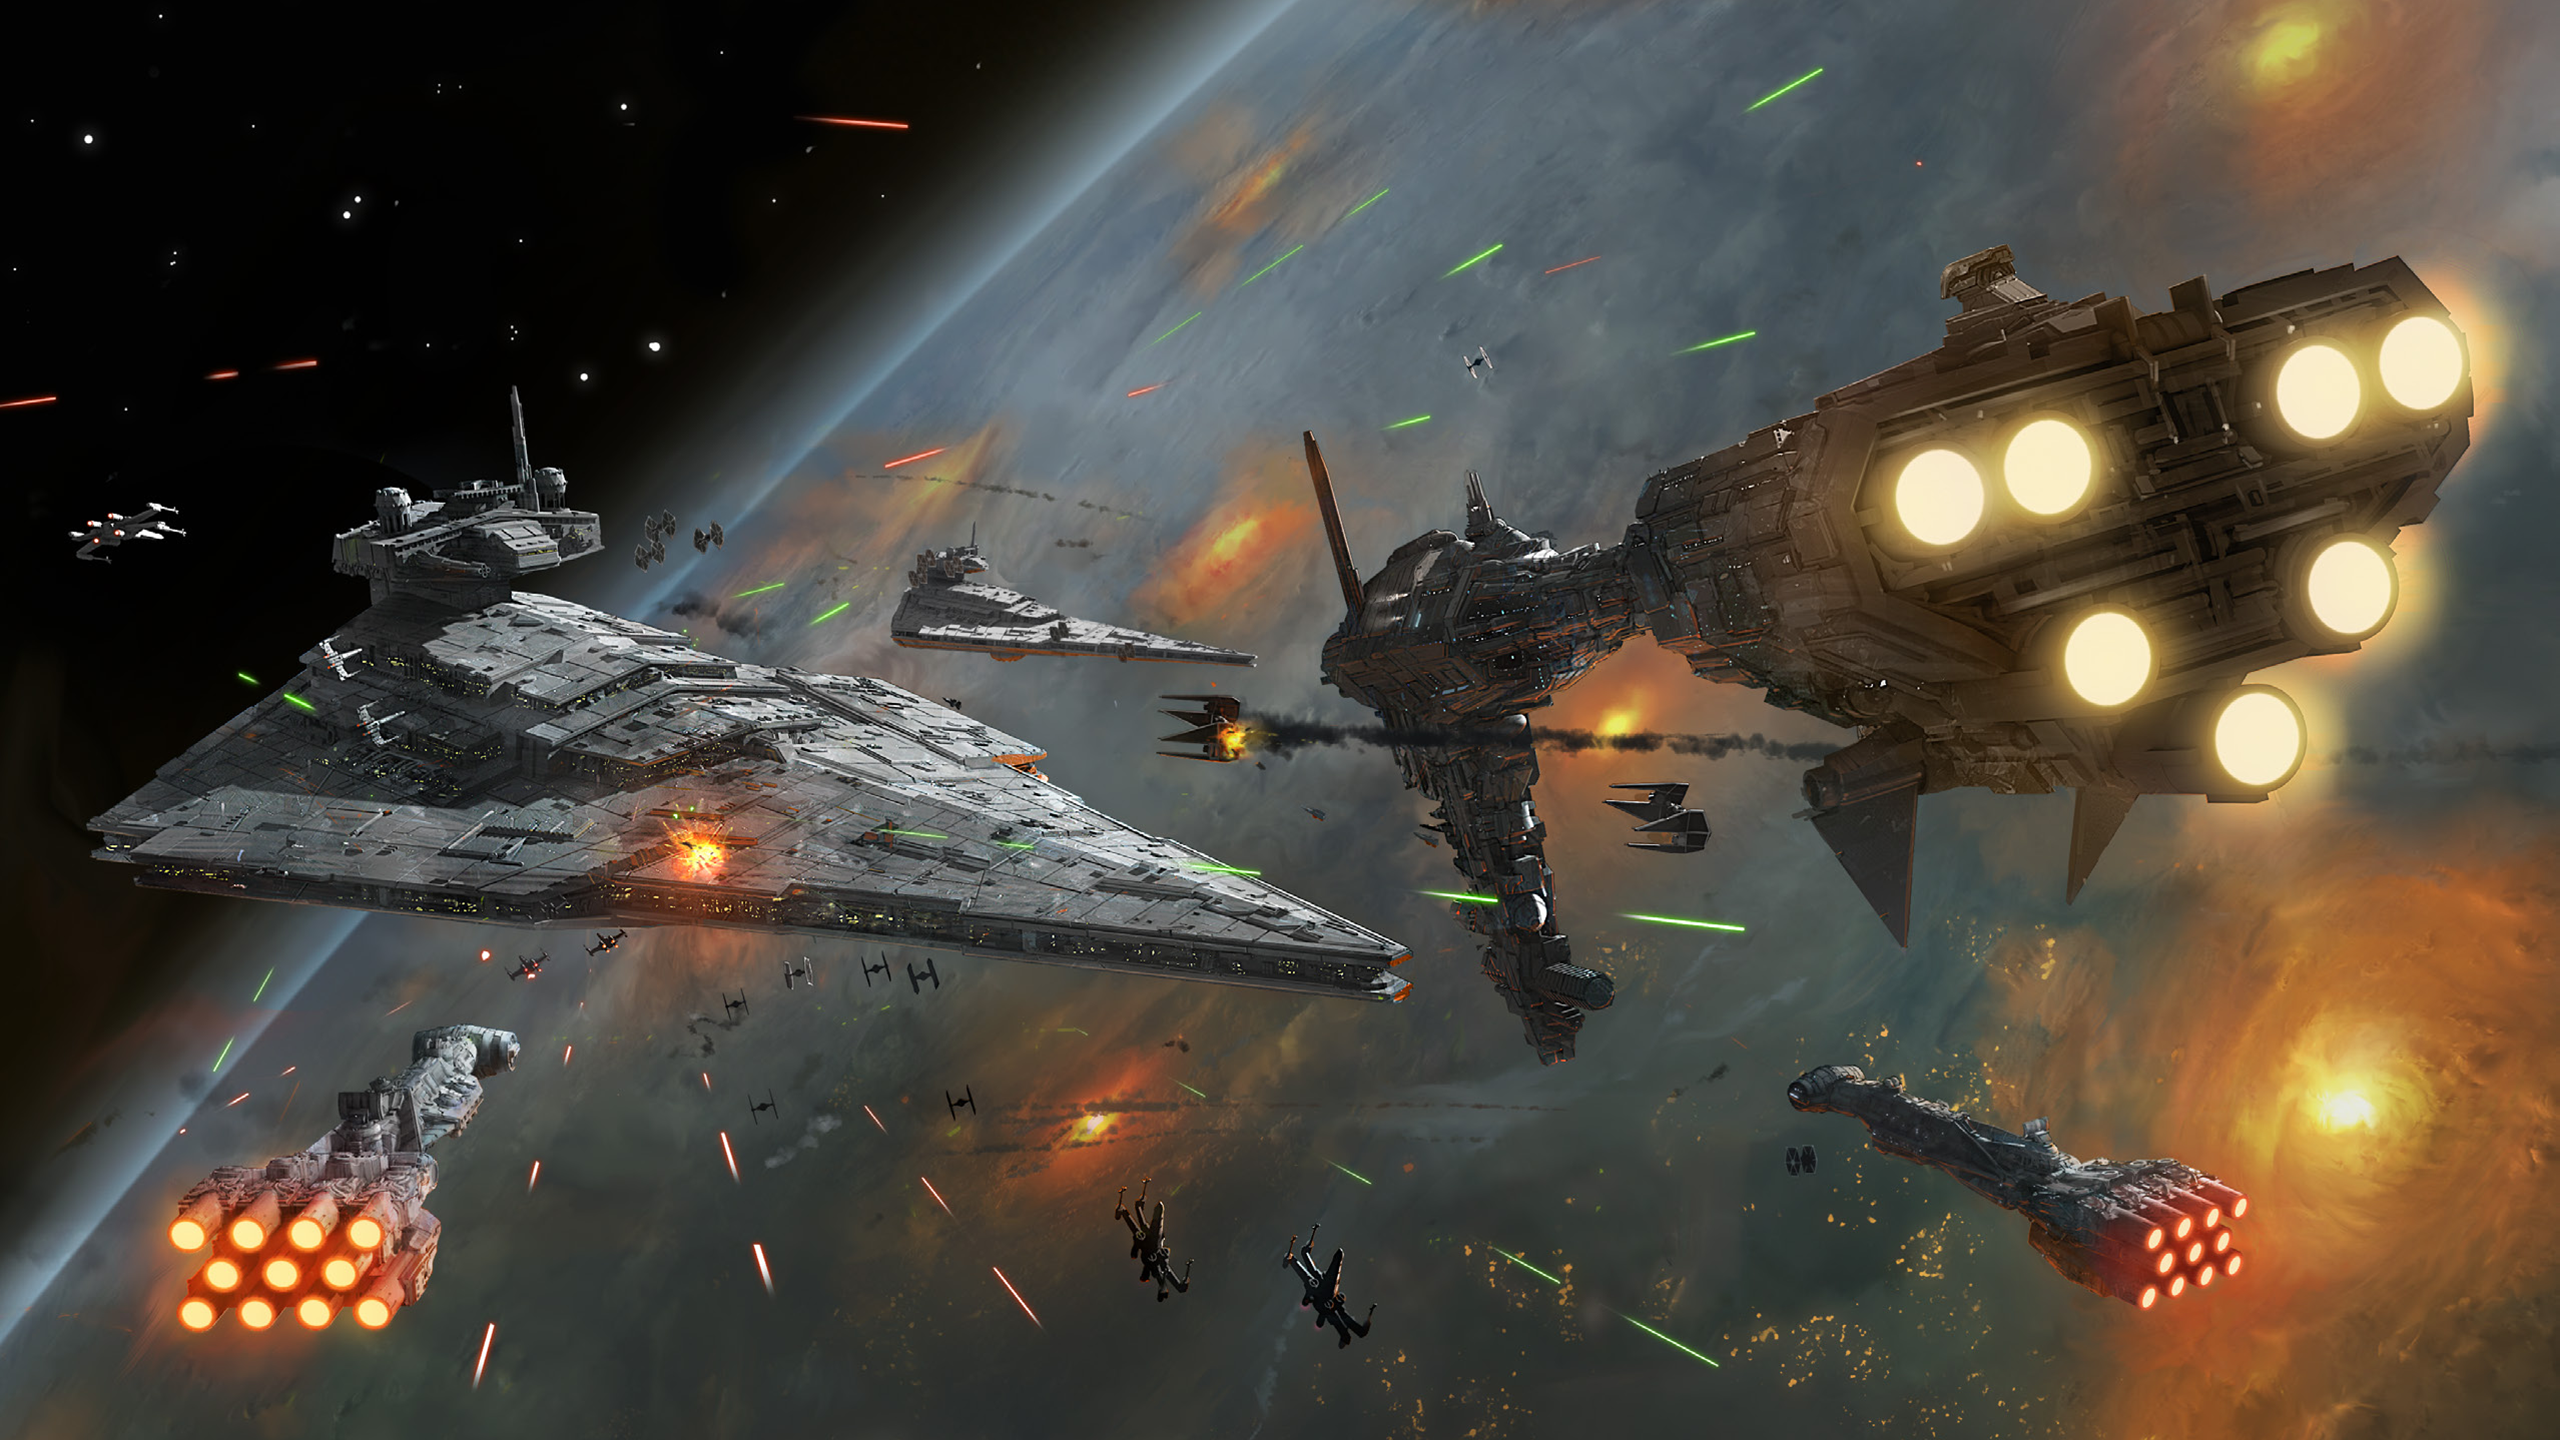 An eclectic collection of backgrounds Iconic Spaceships Space 2560x1440